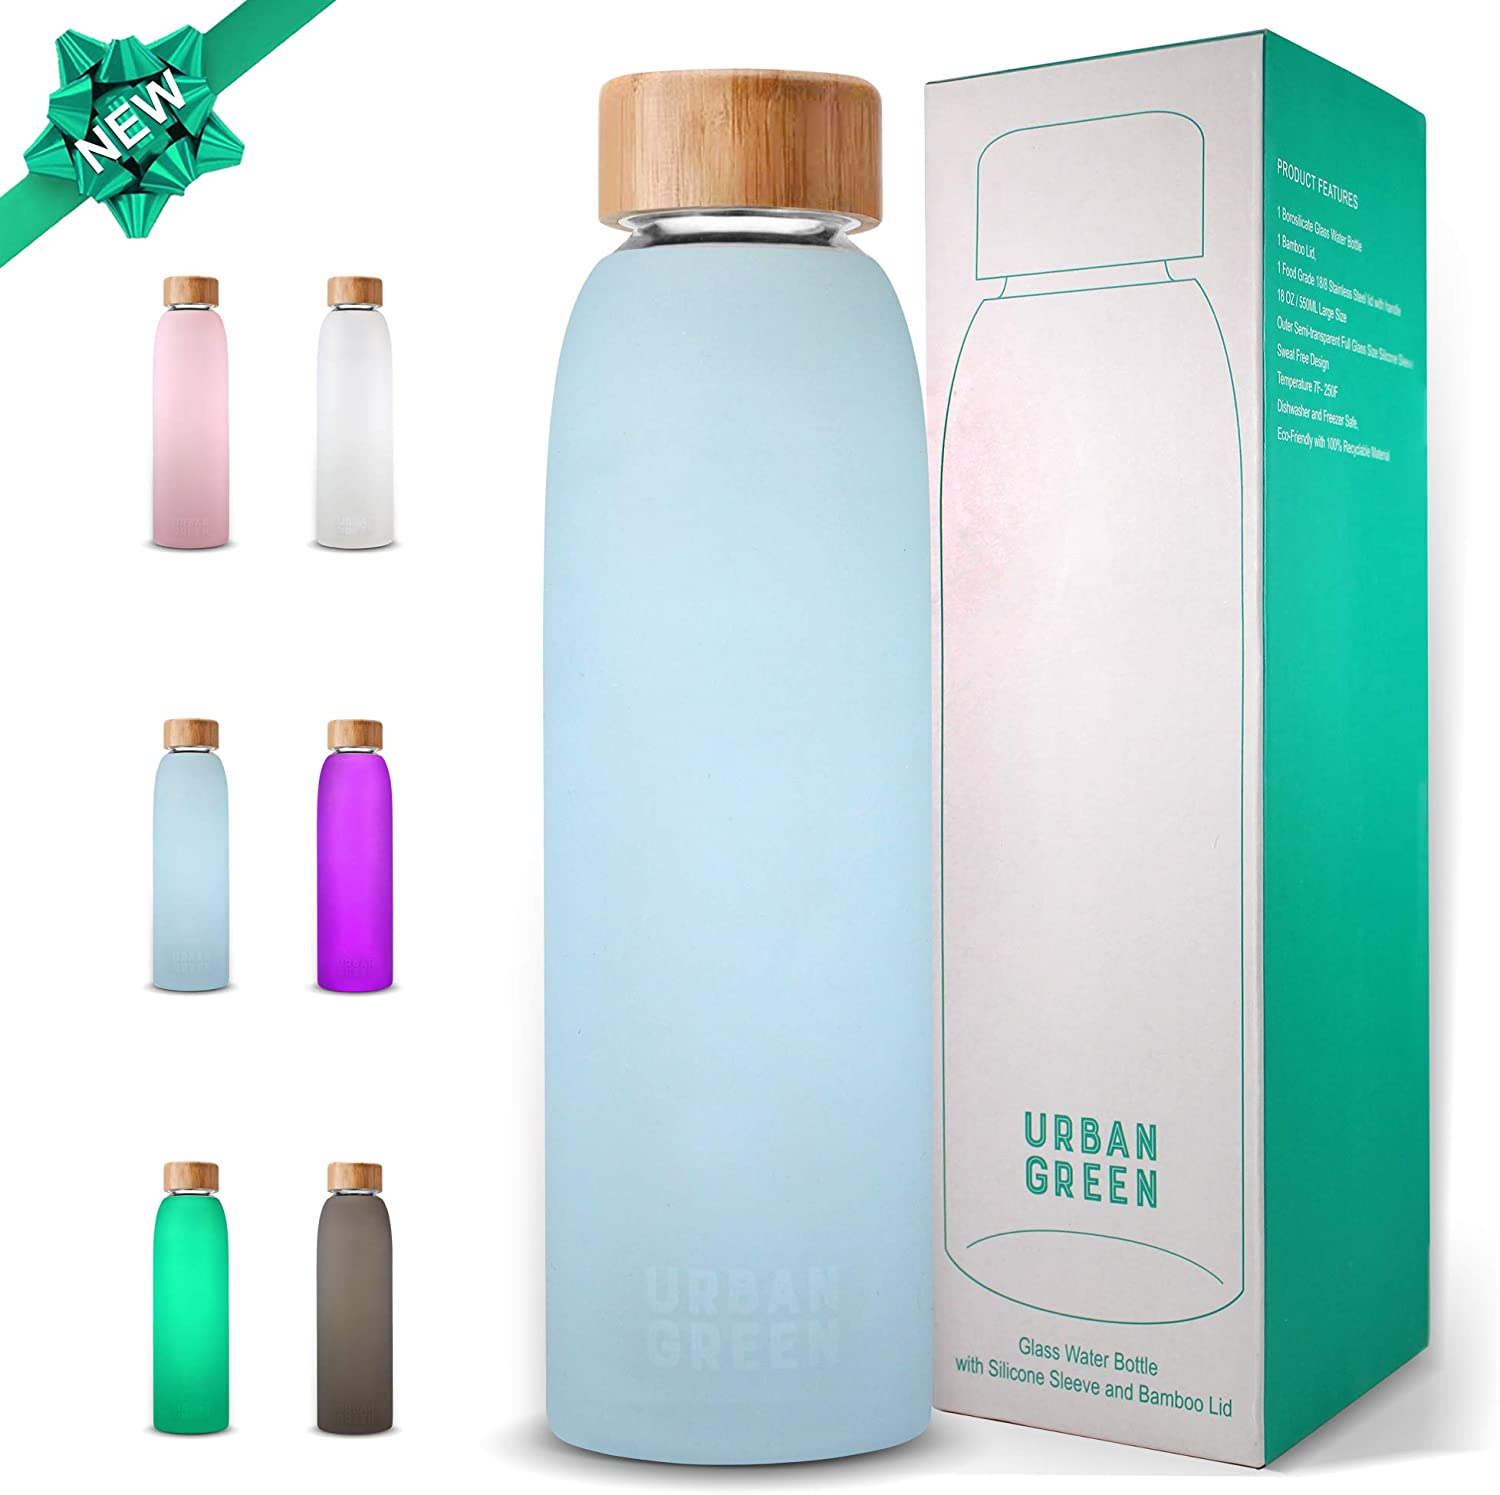 Glass Water Bottle with Protective Silicone Sleeve and Bamboo Lid by Urban green, 18oz, 1extra 304 Stainless Steel Lid with Handle, BPA Free, Dishwasher Safe, Gift Box, Mother's Day Gift